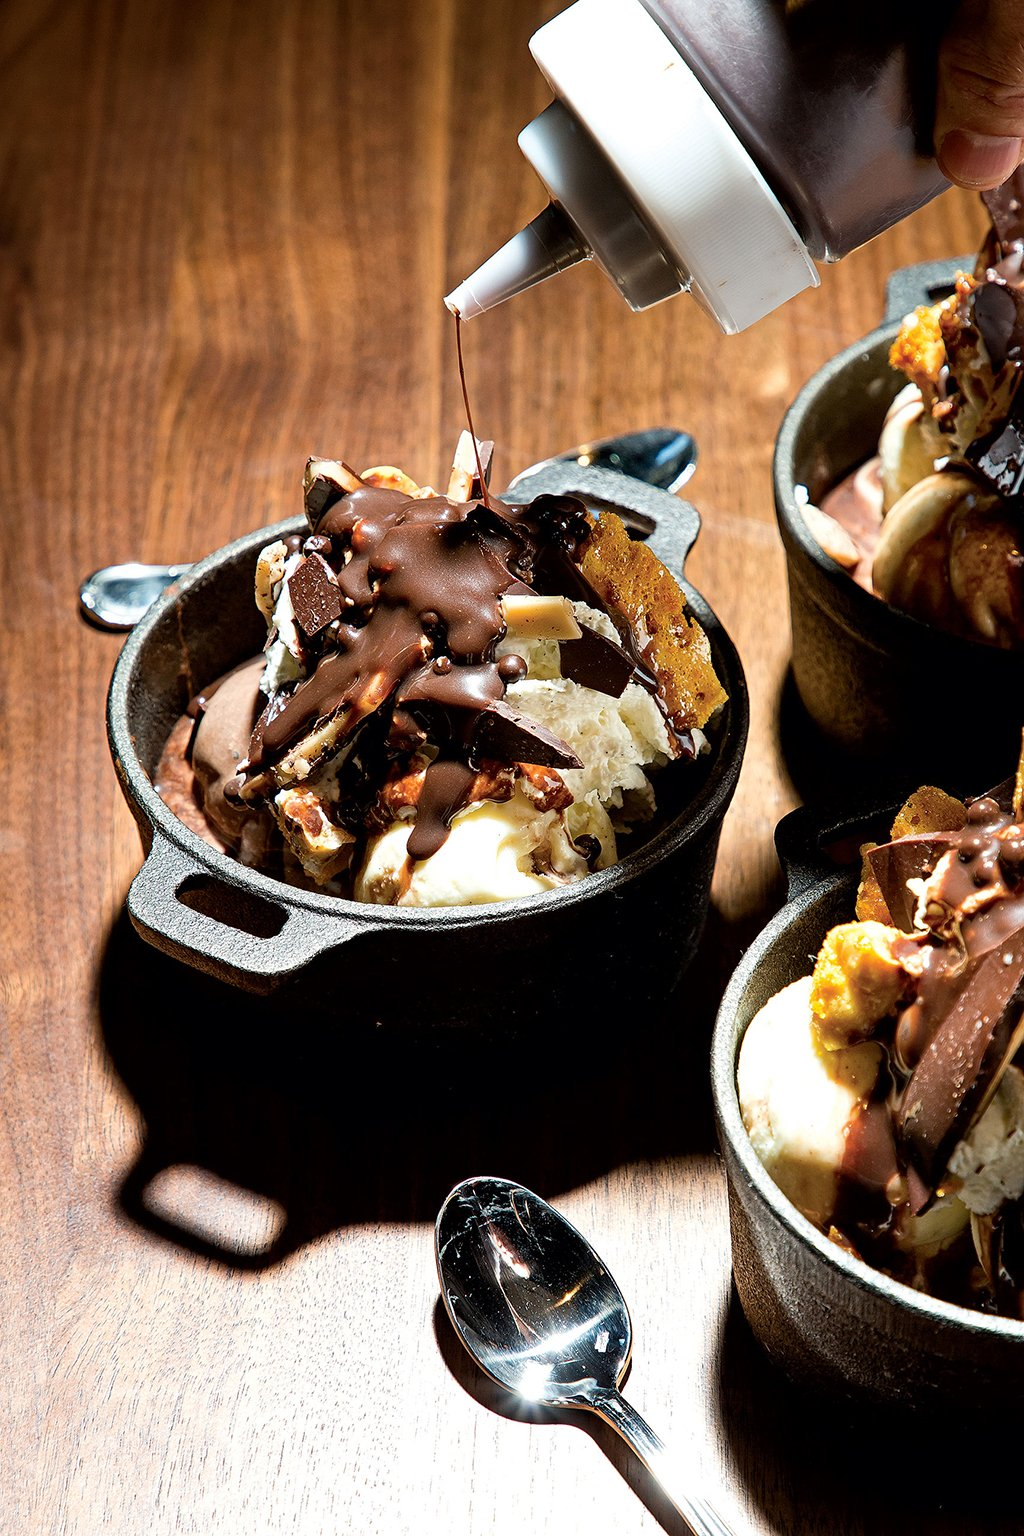 The Riggsby pastry chef Alex Levin's multi-textured brownie sundae. (No, it's not made with that kind of pot.) Photograph by Scott Suchman.